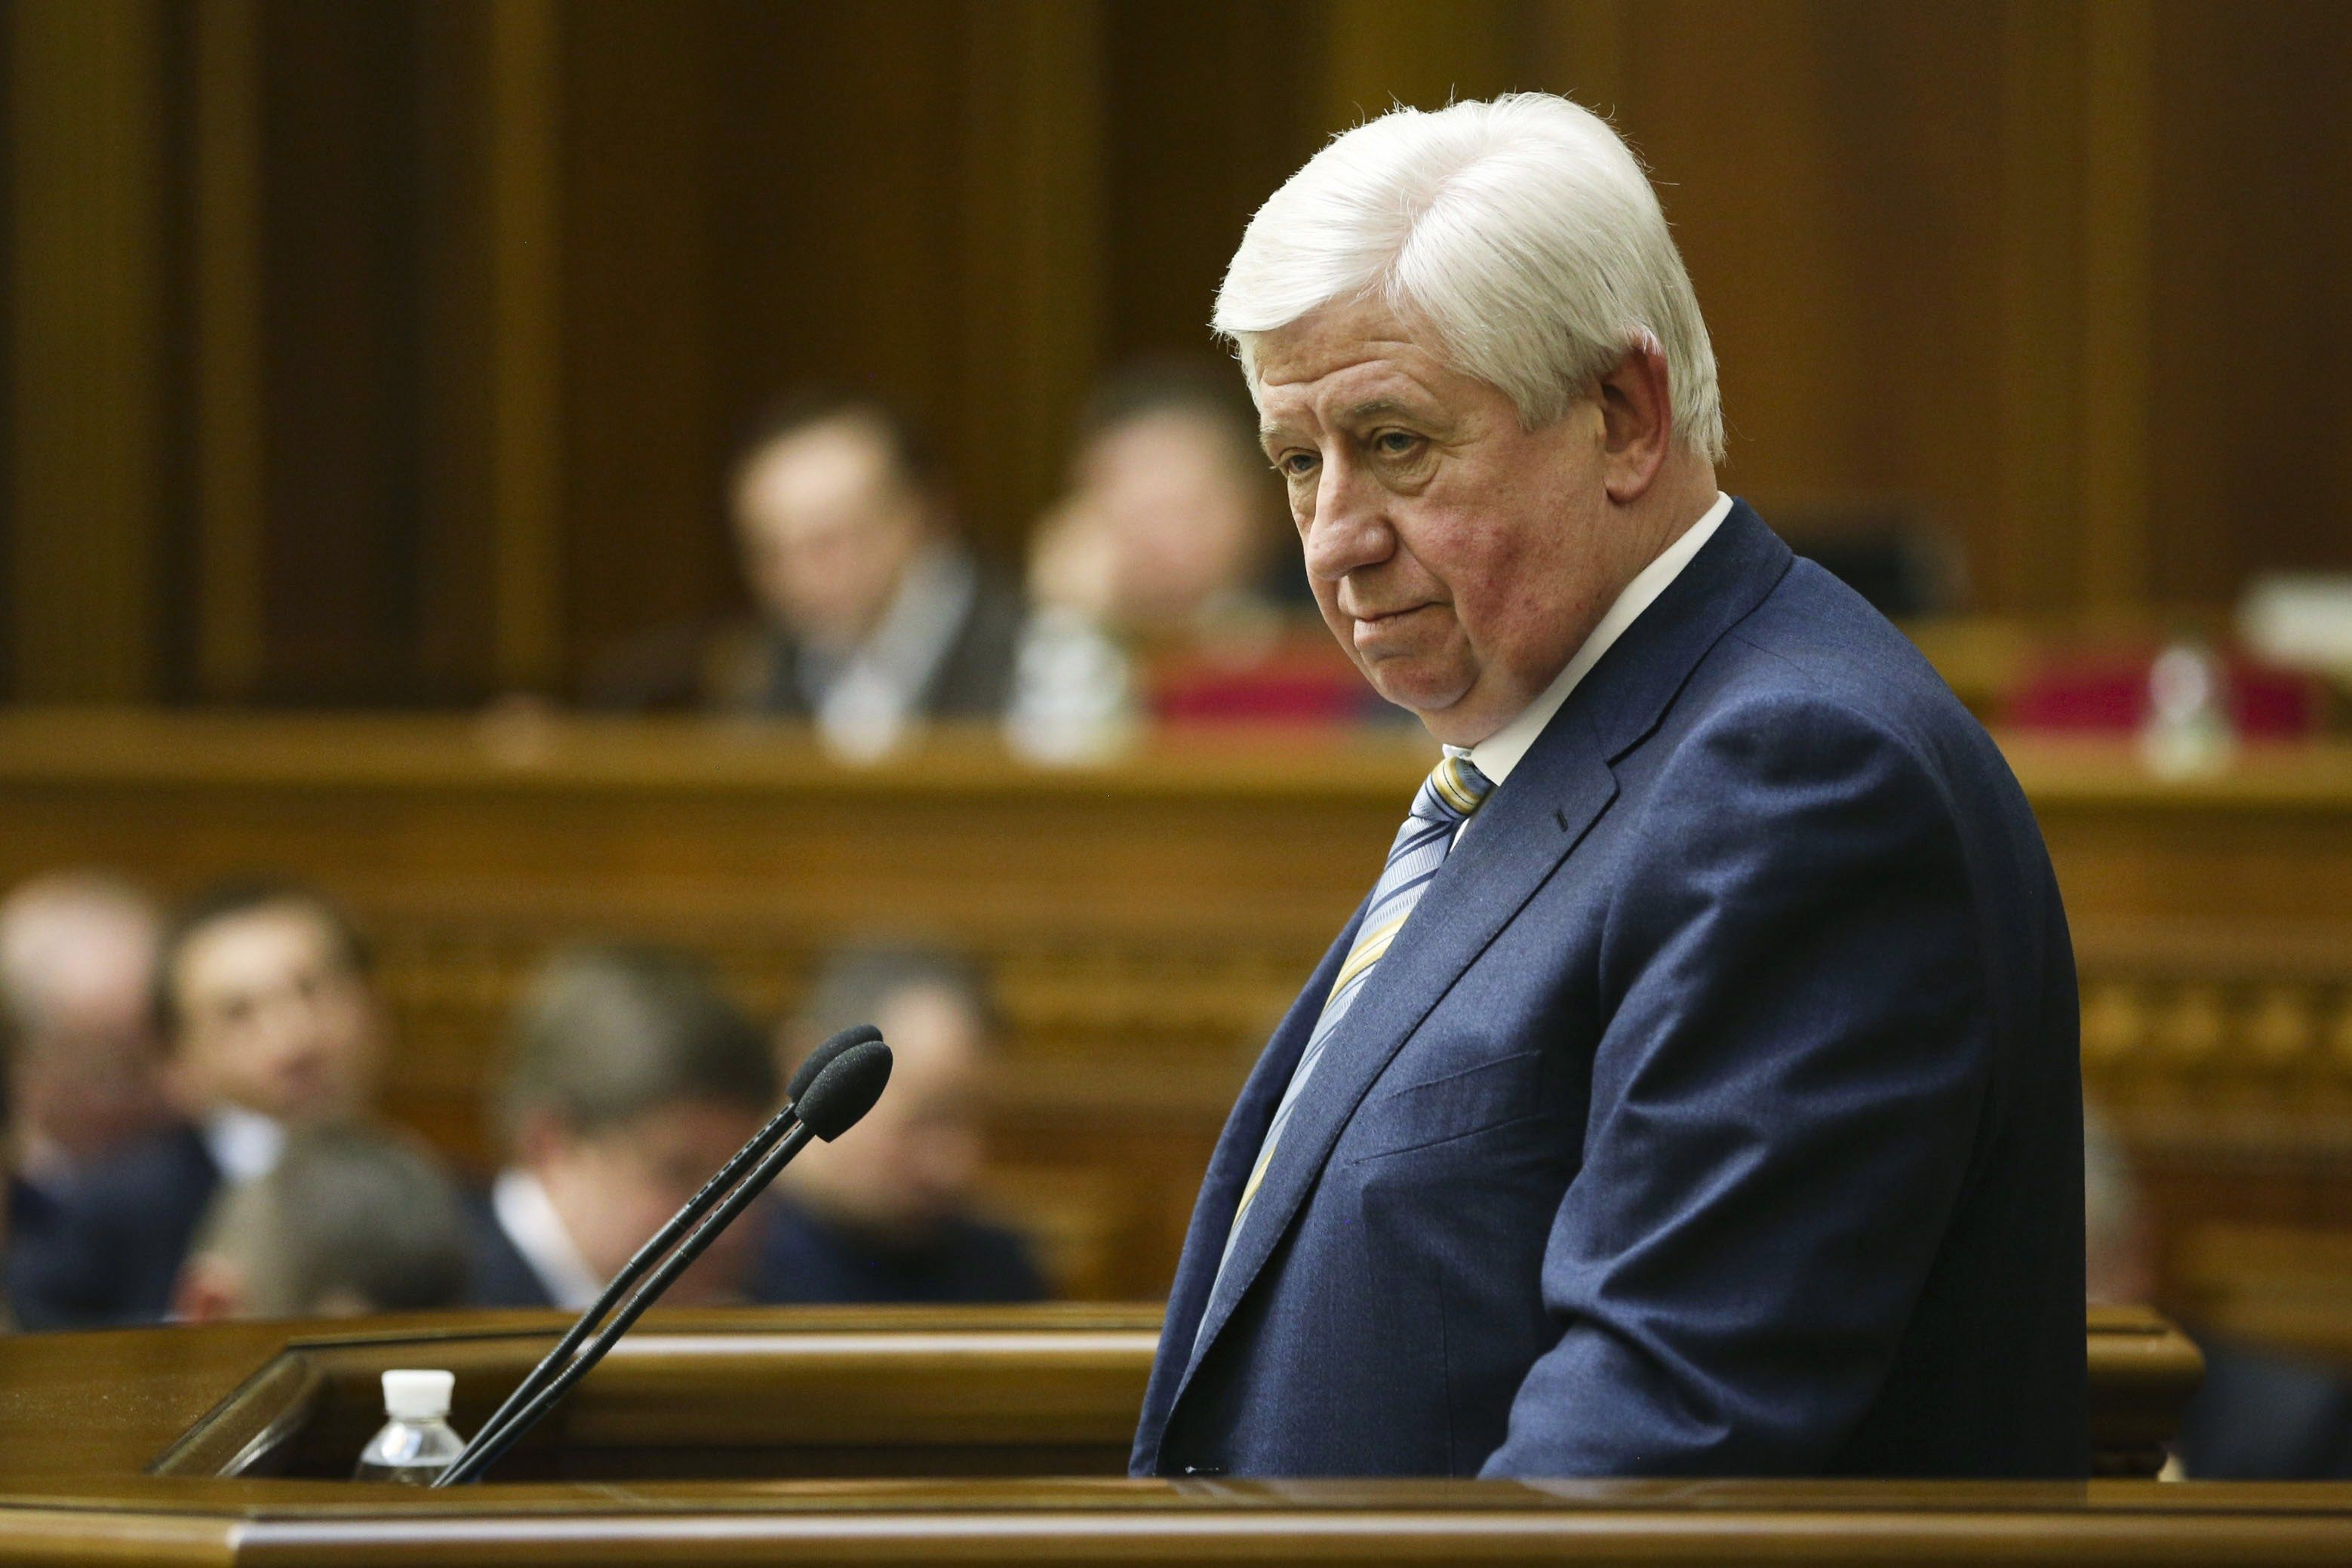 General Prosecutor seat for a billion? –  Shokin case